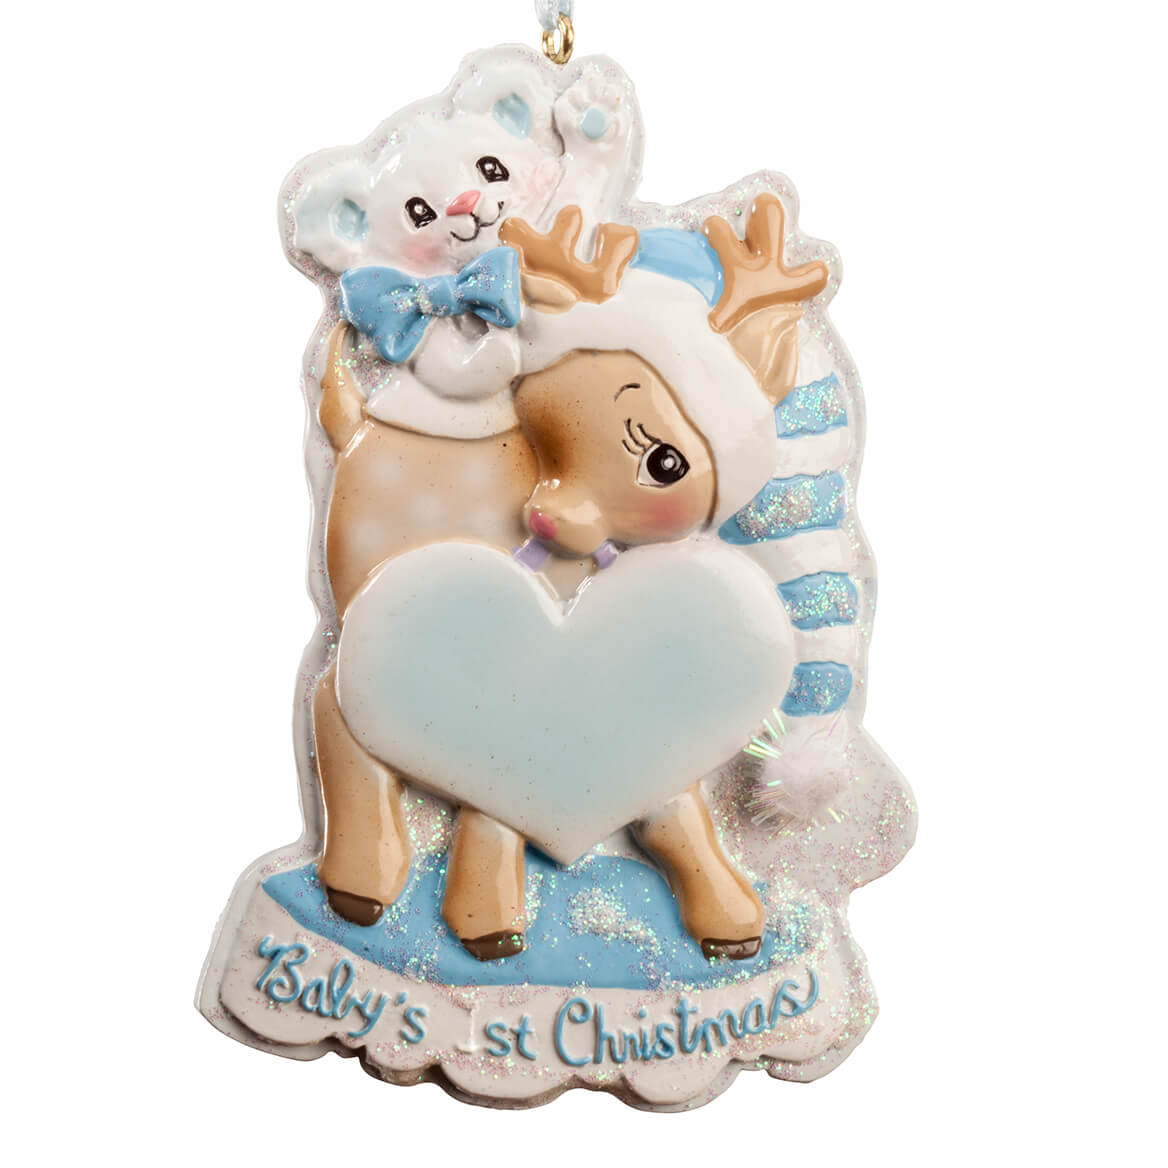 Baby's First Christmas Deer Ornament, Blue